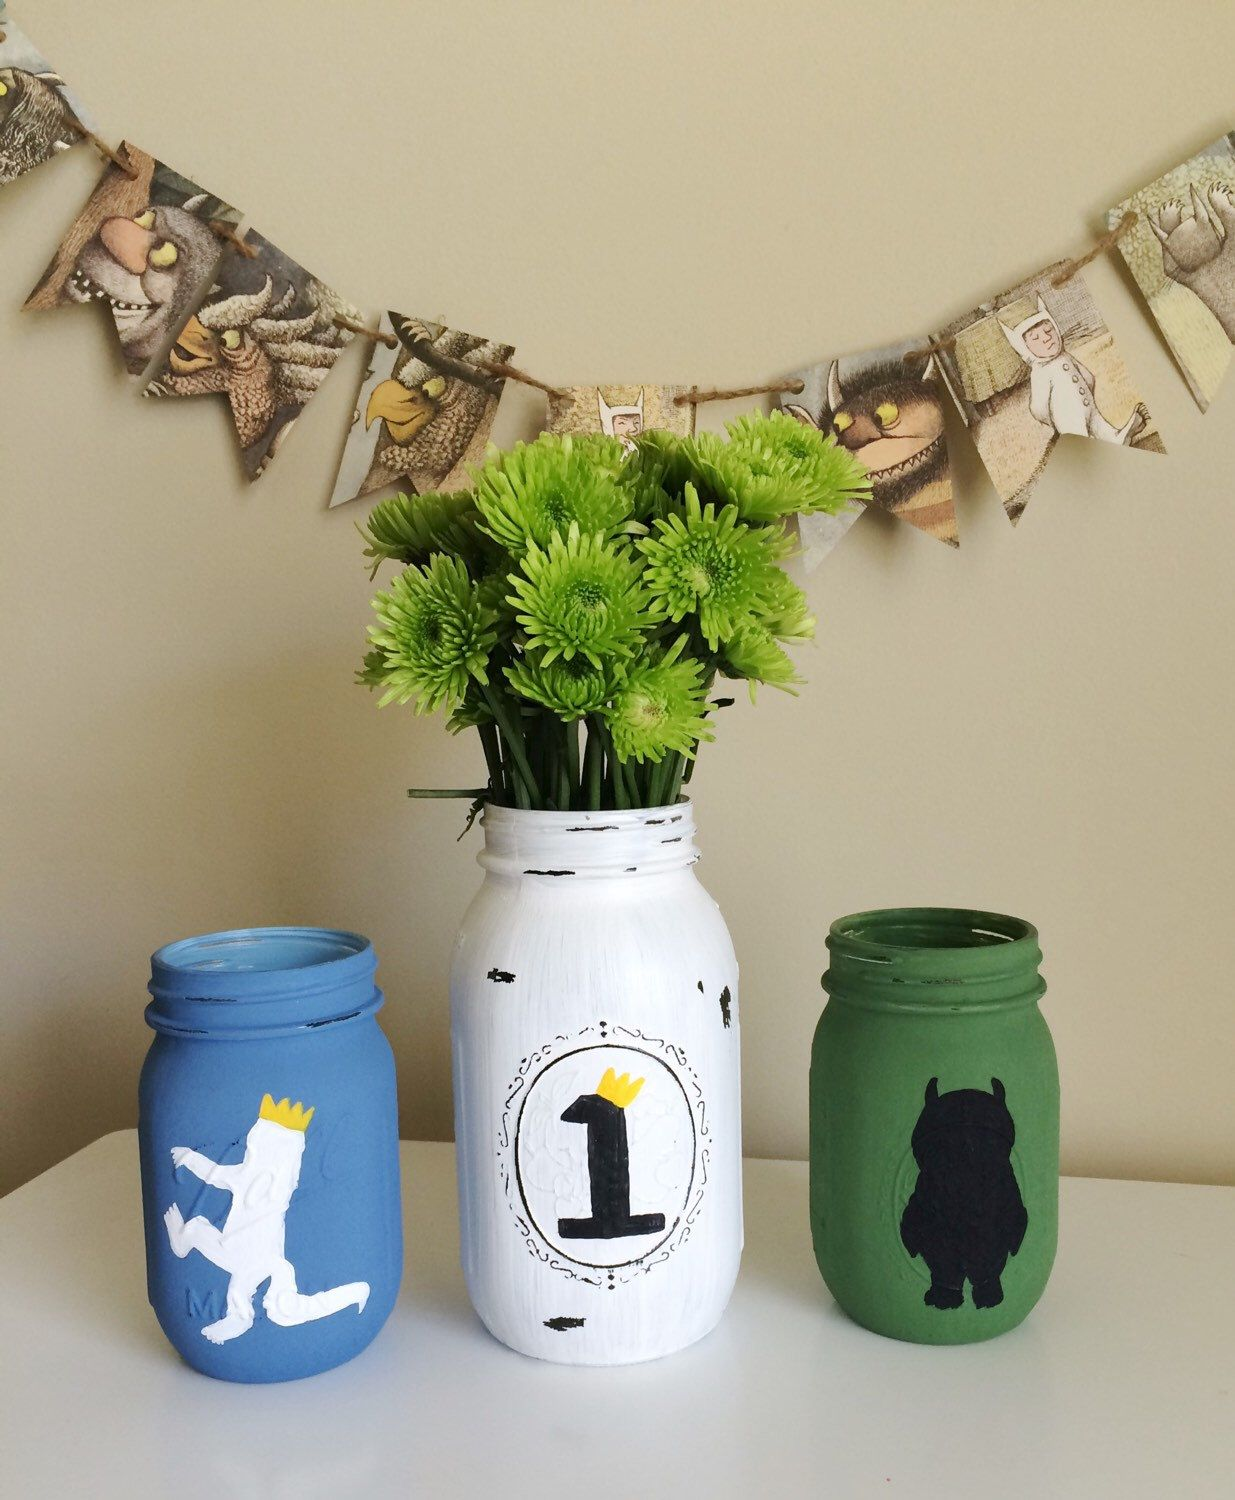 Mason Jar Party Decorations: Where The Wild Things Are Painted Mason Jars, Centerpiece